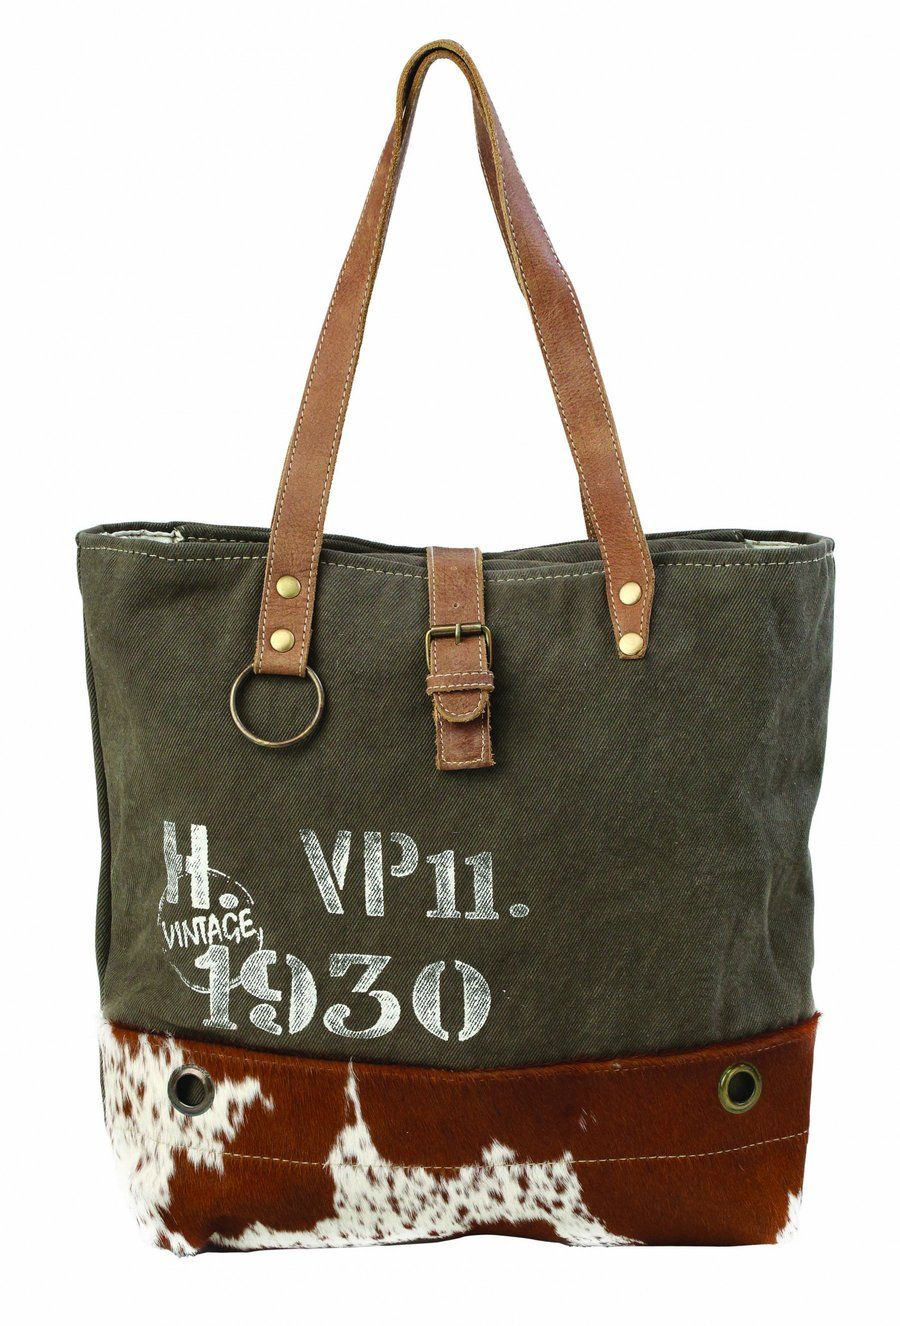 77233e3dfdd5 Canvas & Hair on Hide Tote #1193 in 2019 | It's a Western Thing ...